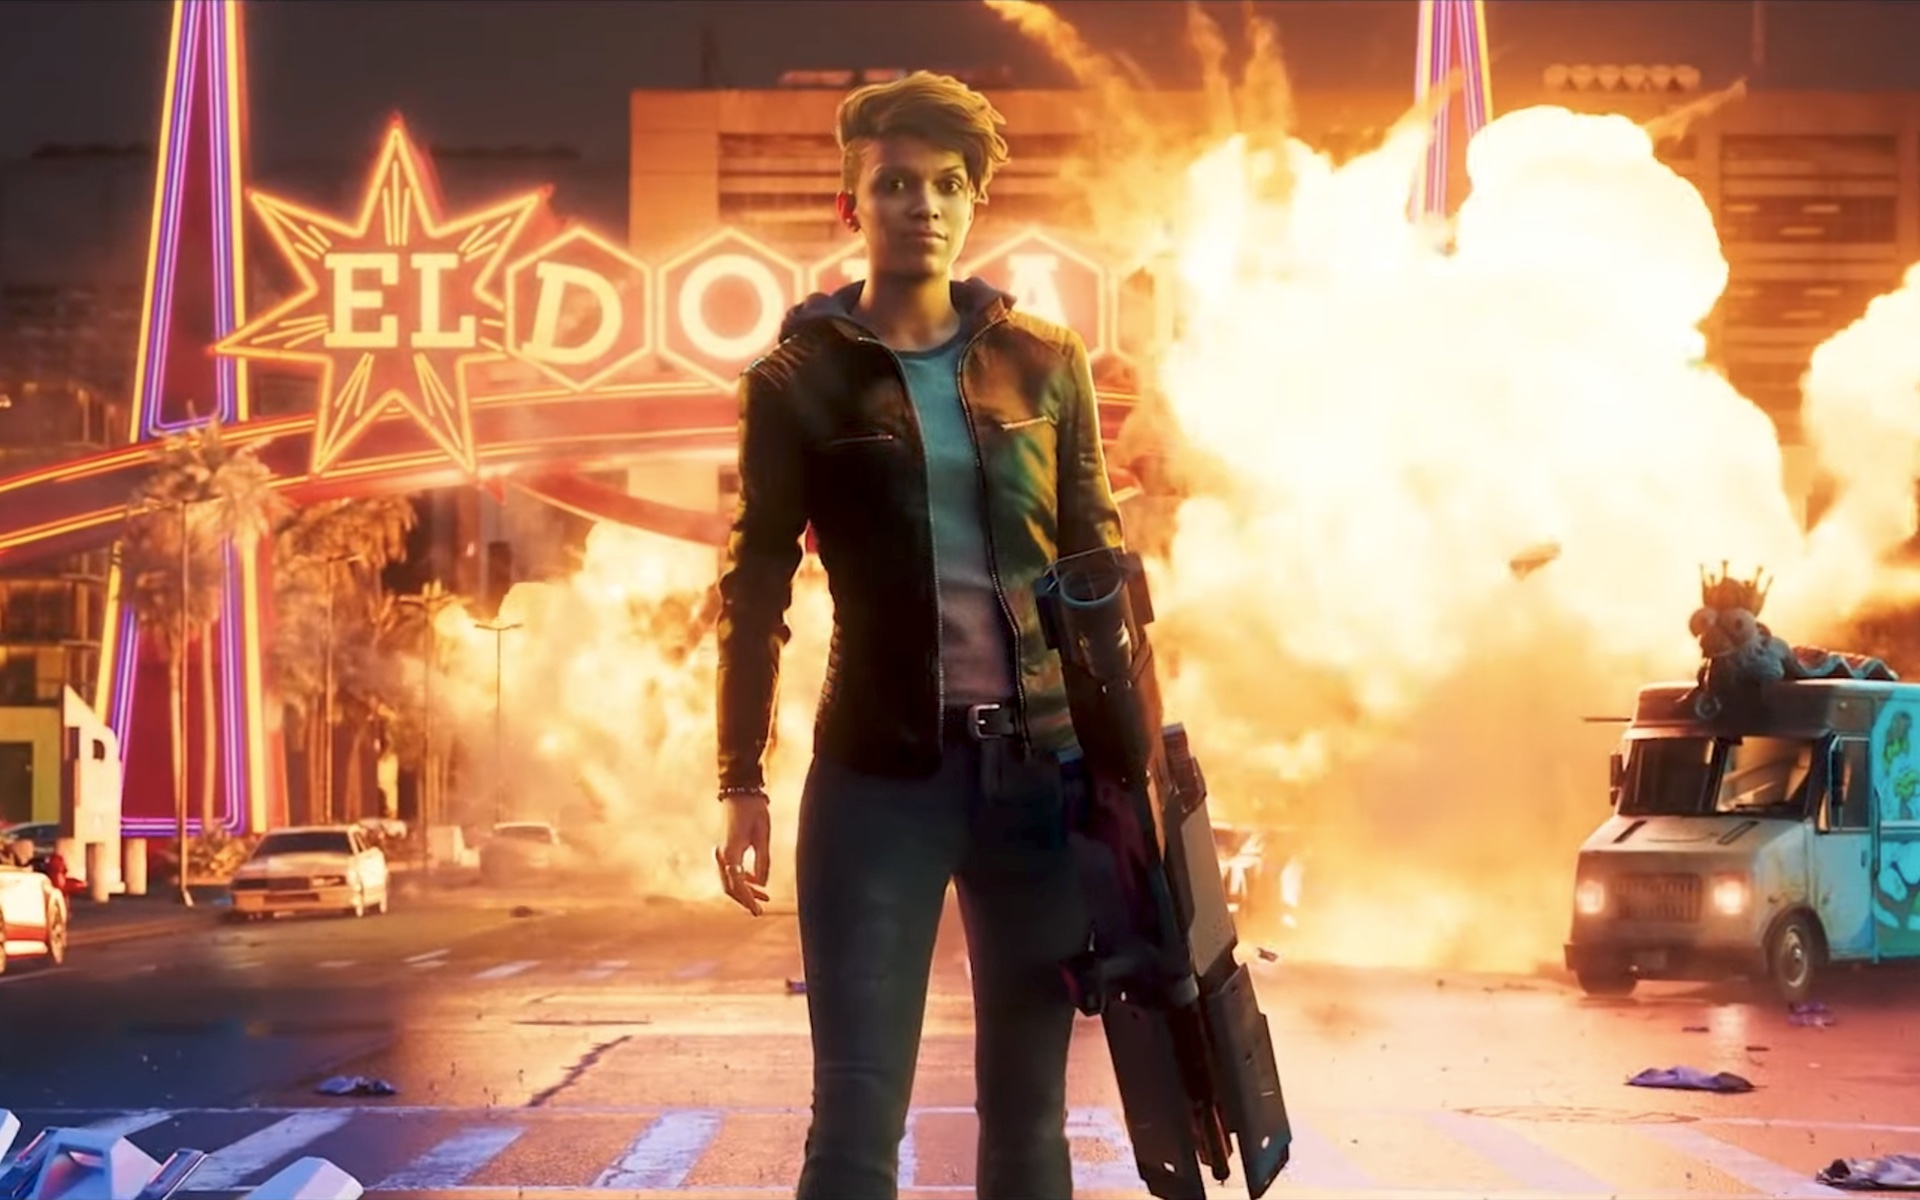 A look at Boss from the new Saints Row